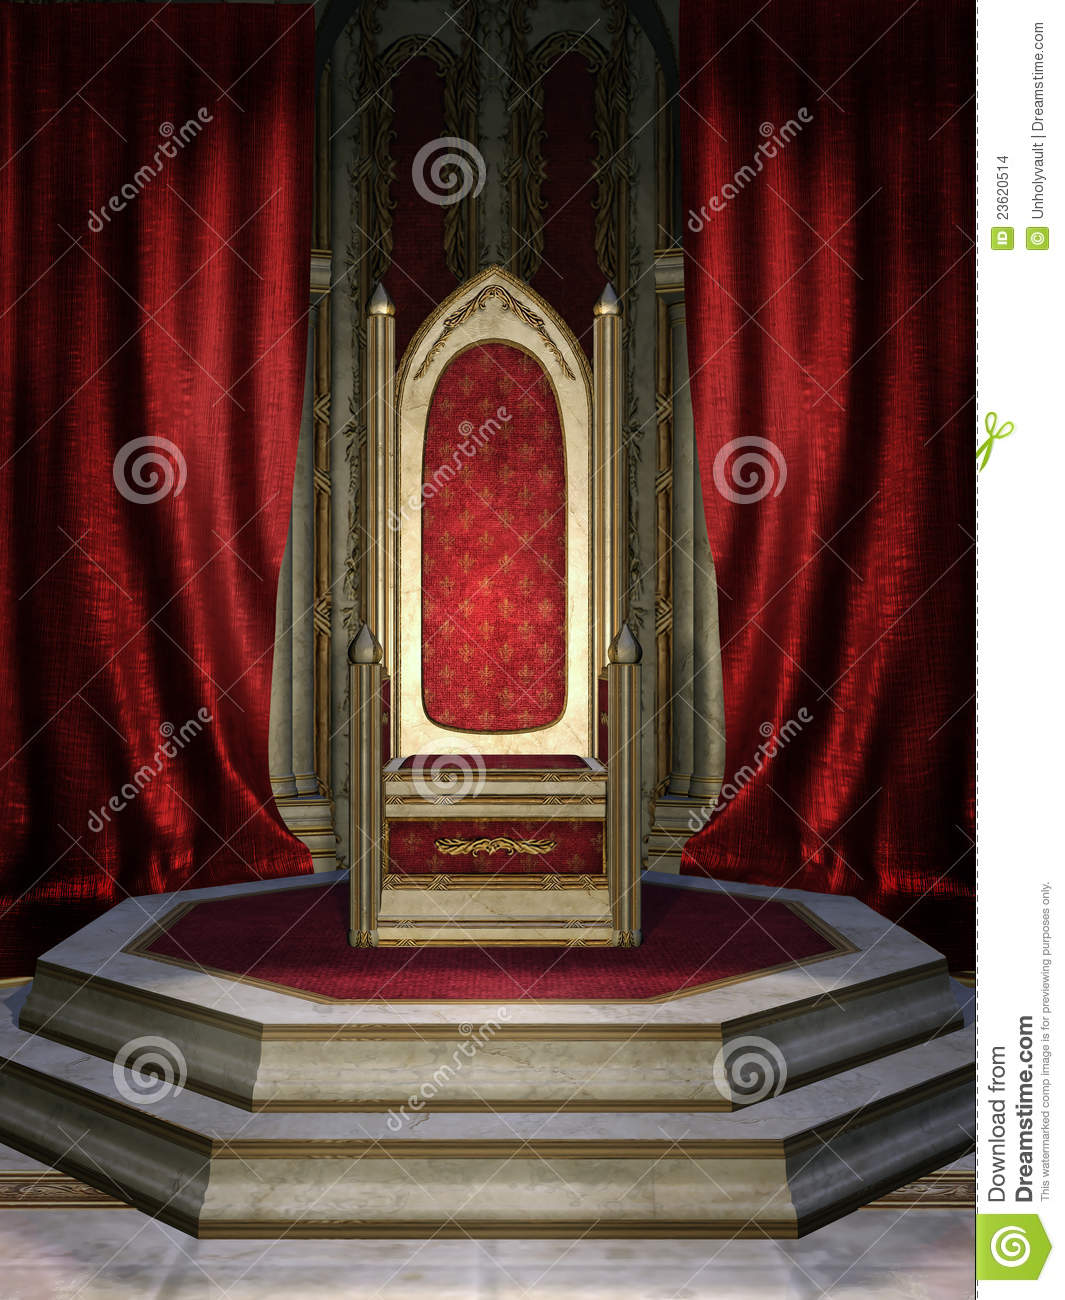 Fantasy throne room with red curtains